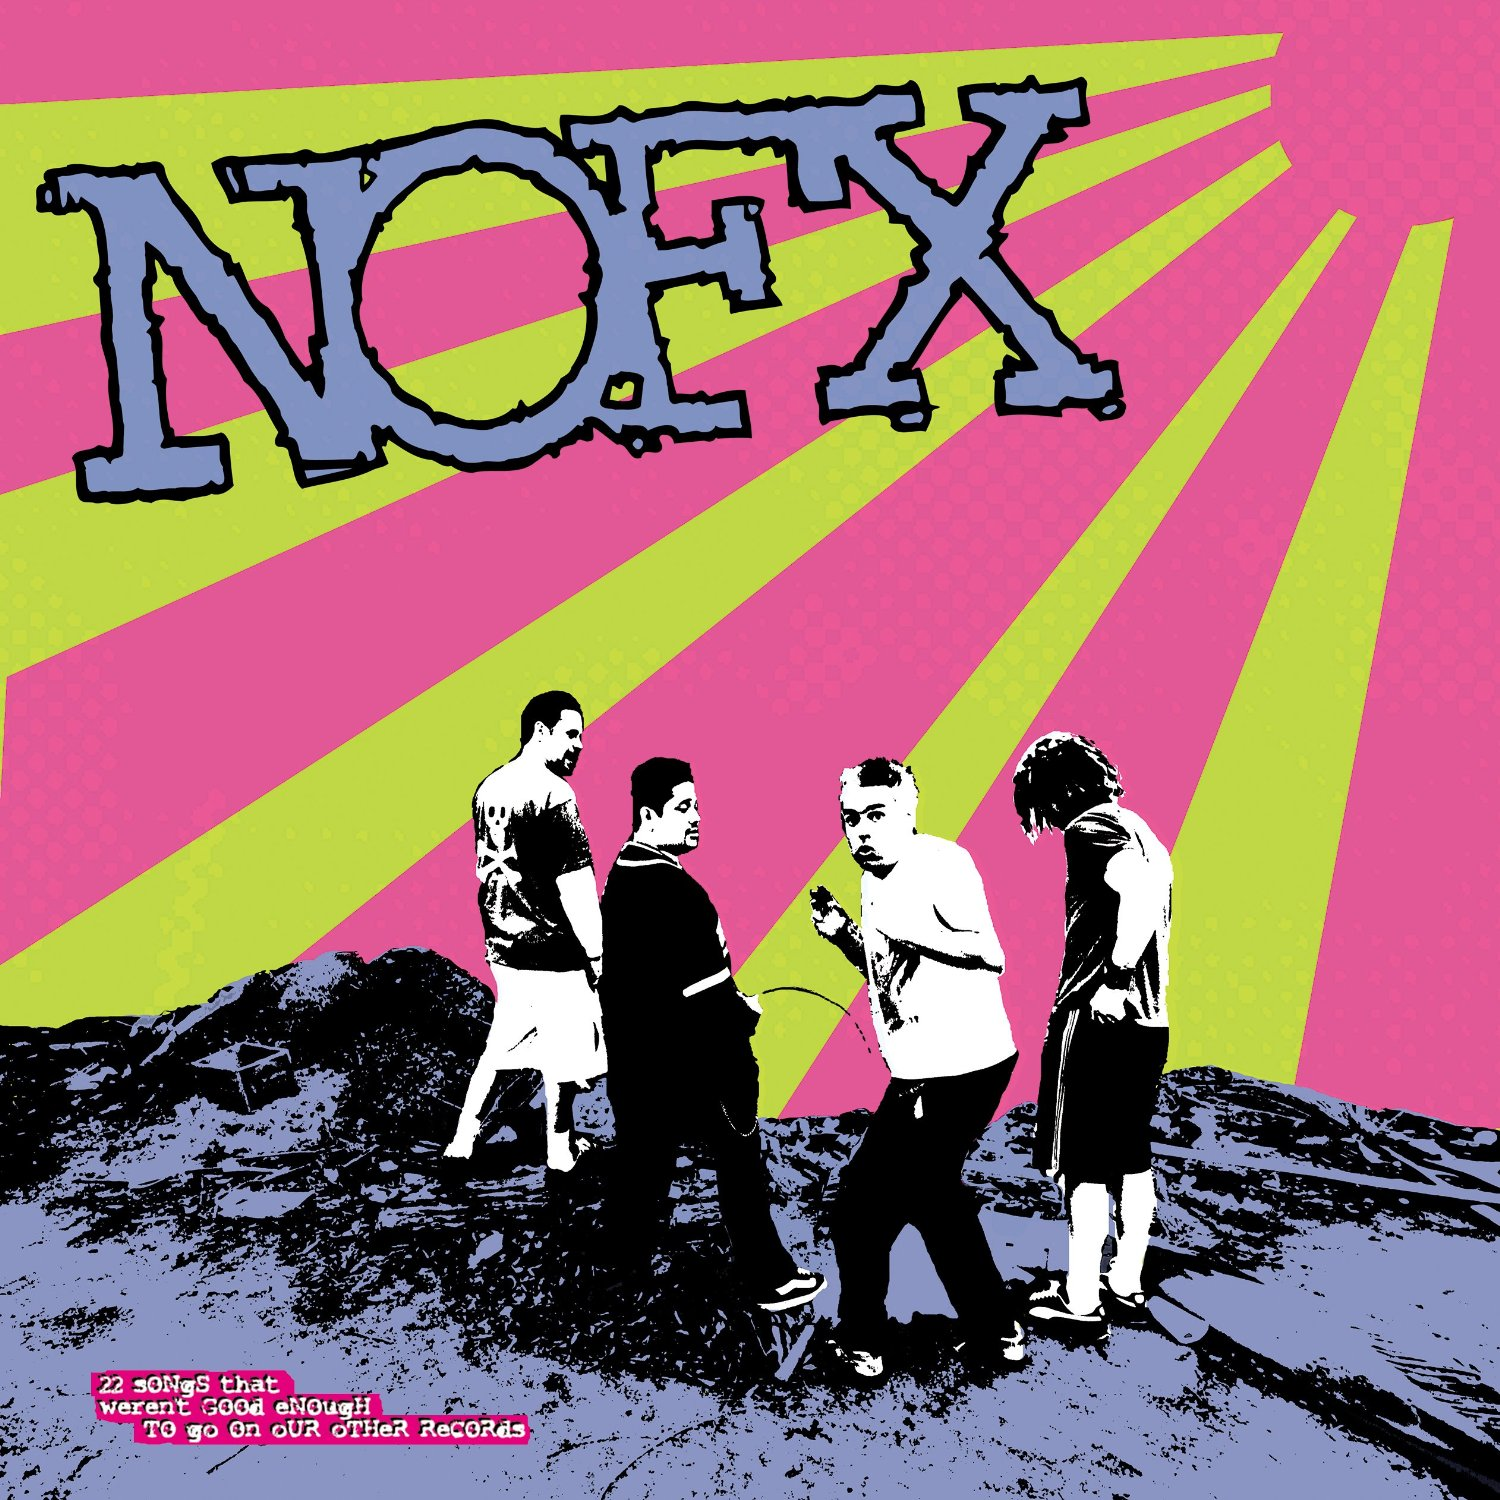 Toxic Toast Nofx 22 Songs That Werent Good Enough To Go On Our